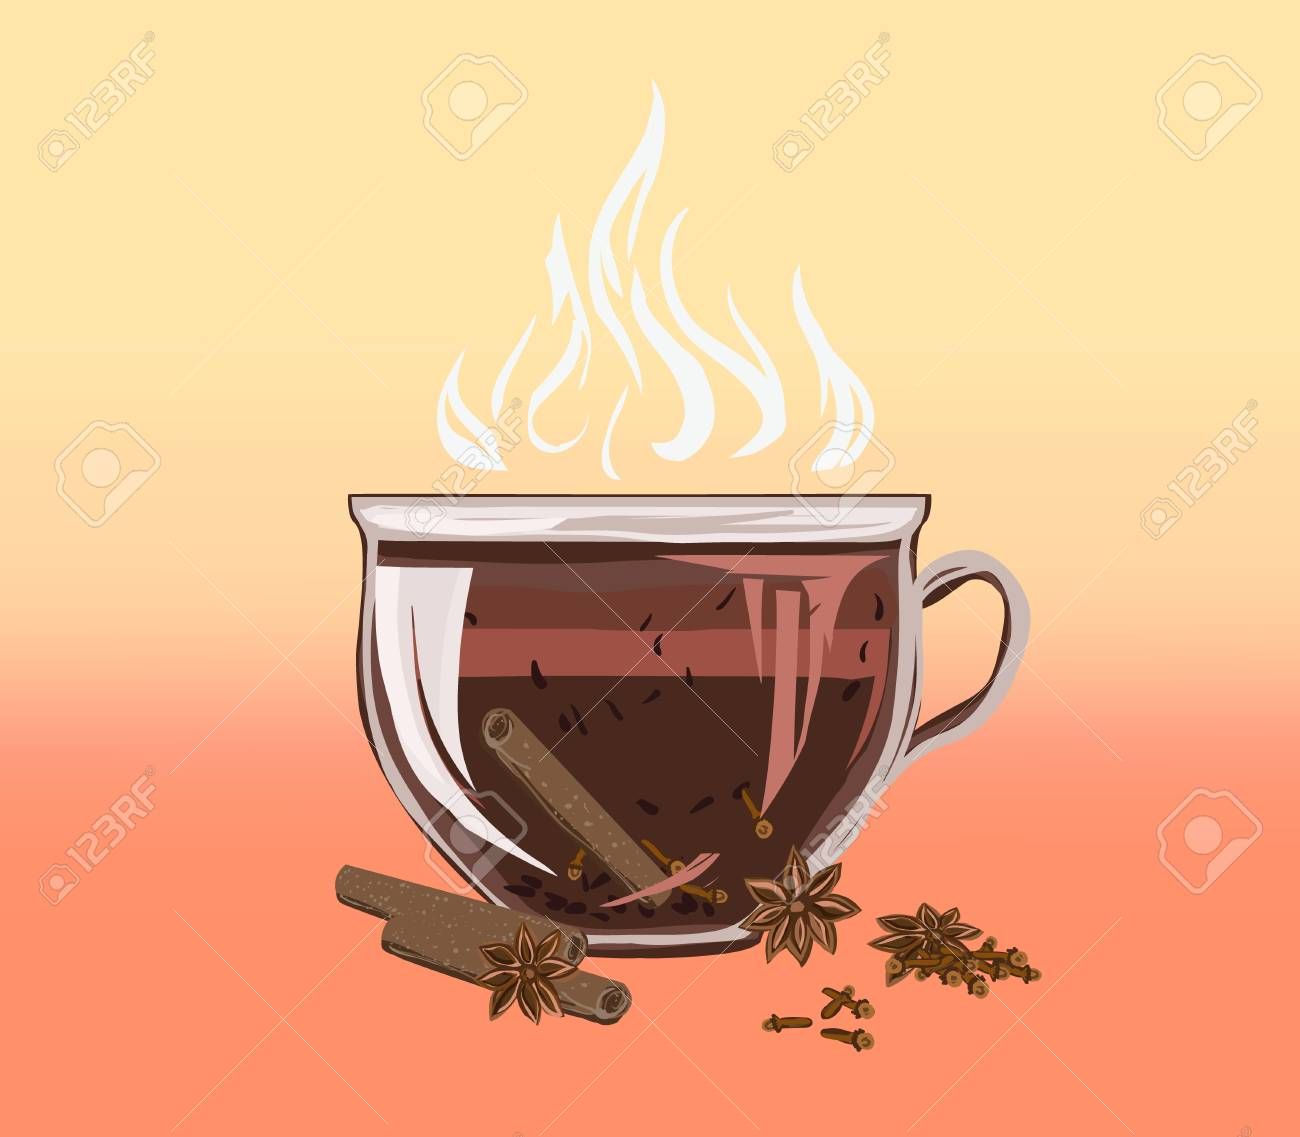 Black leafy herbal tea in a cup with cinnamon and cloves. Fragrant tasty morning drink with beneficial properties for cleansing detoxifying body, for relax. Vector flat cozy illustration recipes and advertising. - 100875596